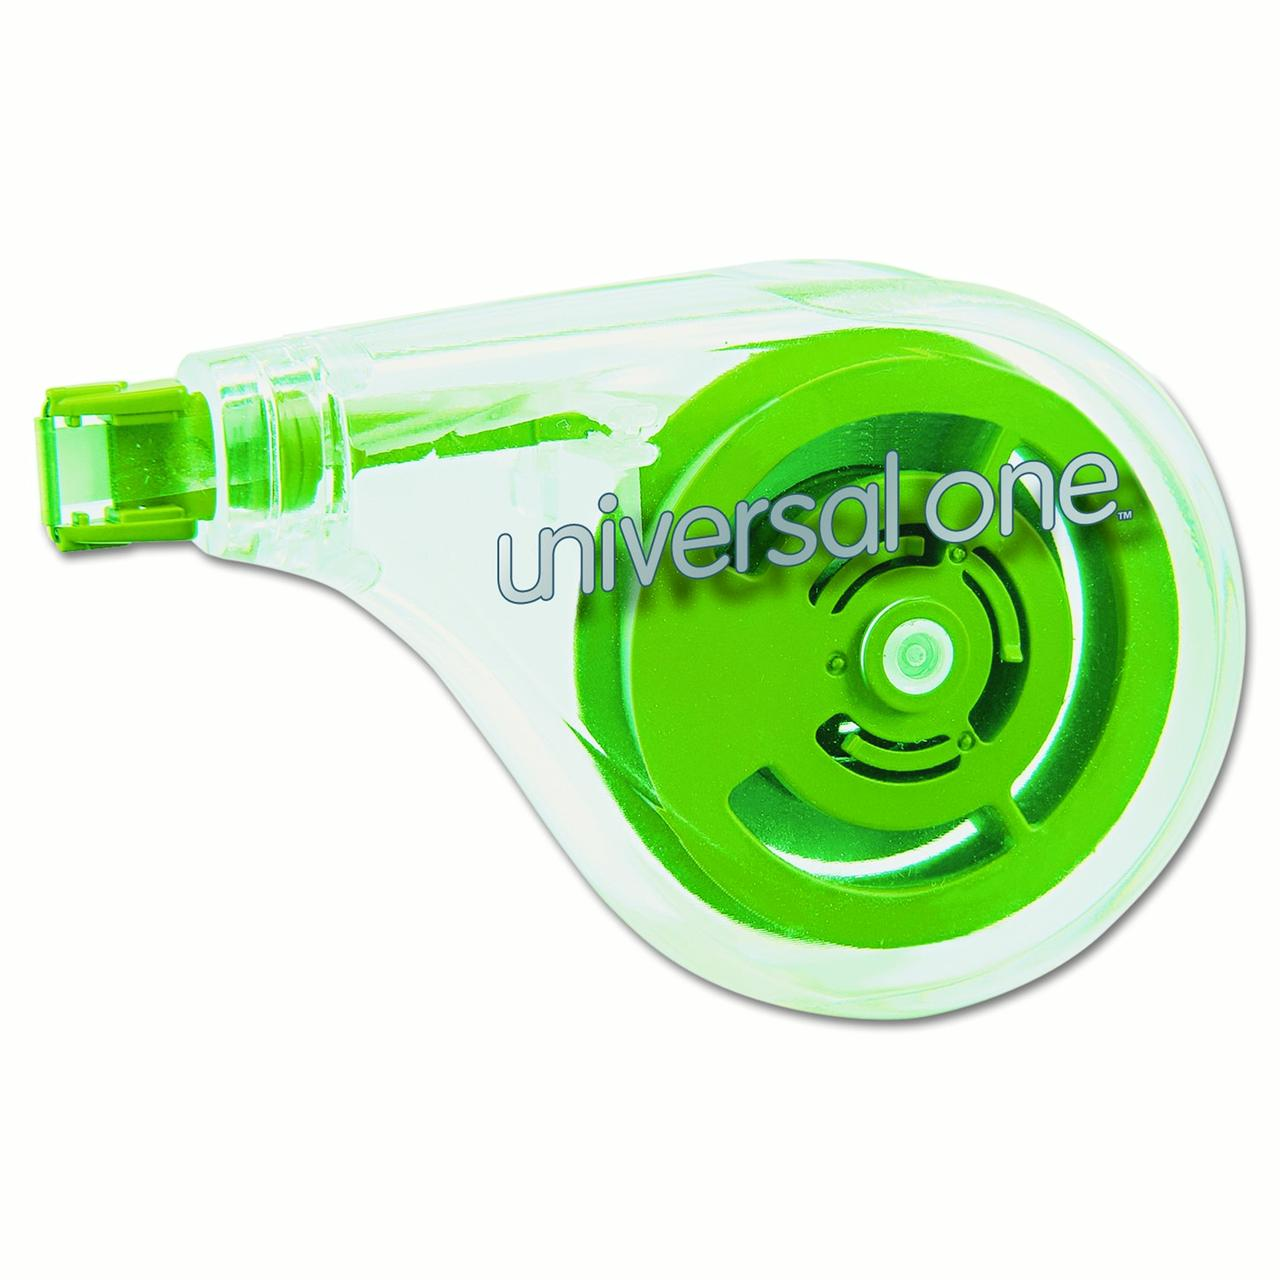 "Universal One Sideways Application Correction Tape, 1/5"" x 393"", 2 Ct"